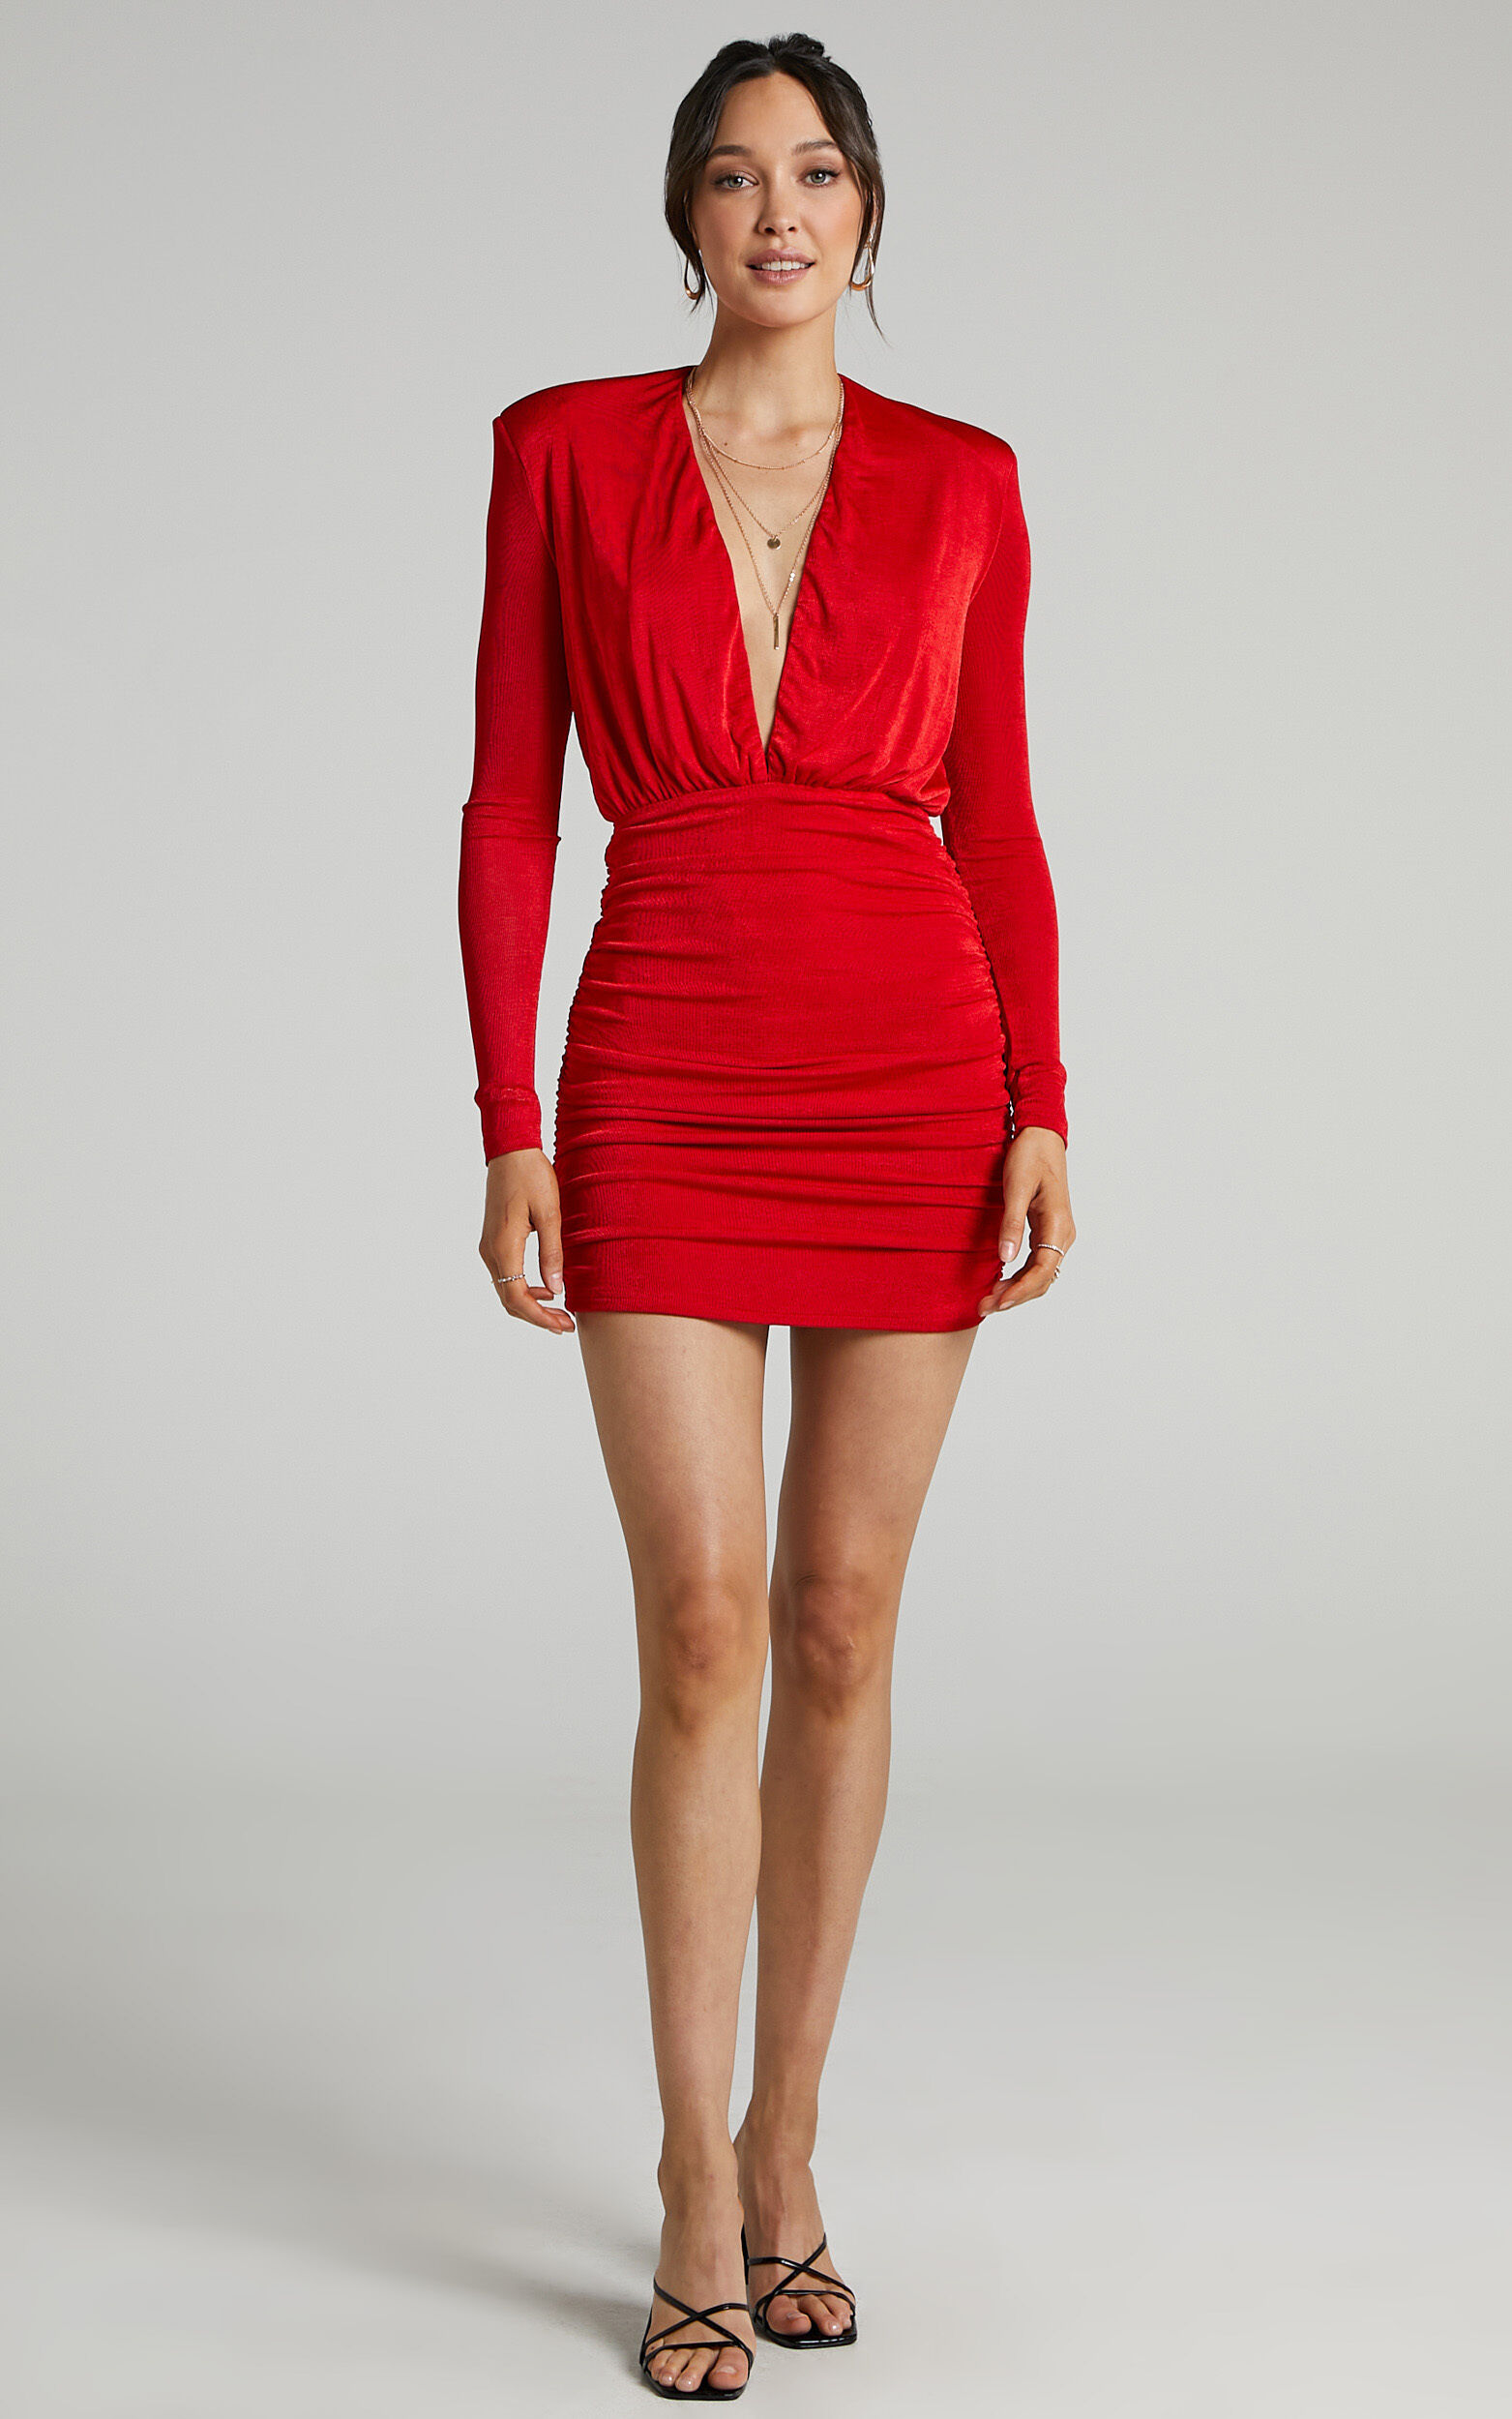 Kaitie Mini Deep V Open Front Ruched Dress in Red - 06, BRN3, super-hi-res image number null